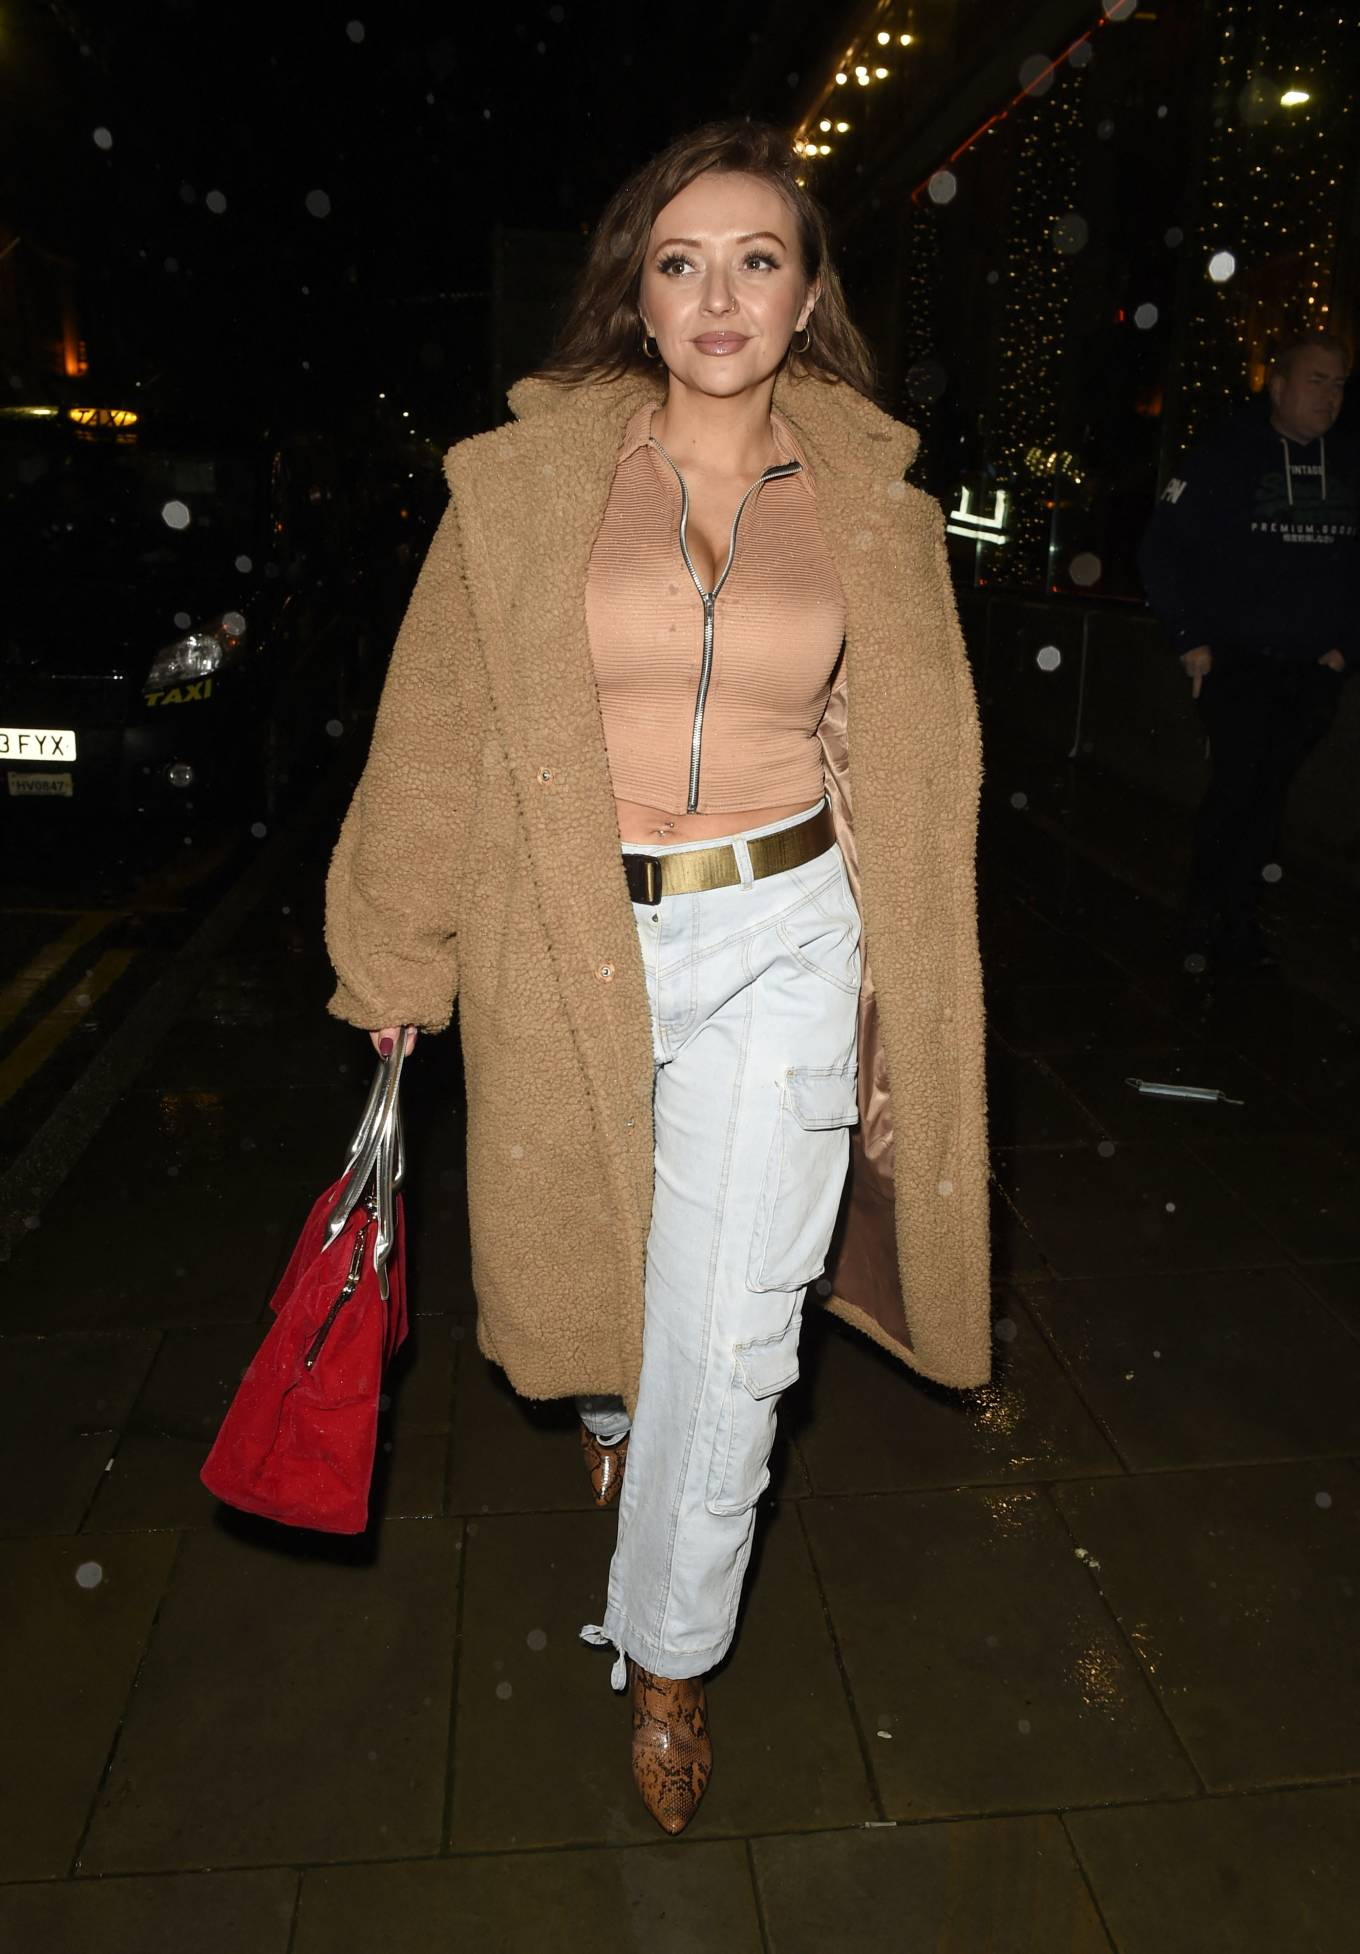 Kimberly Hart-Simpson - Night out in Manchester